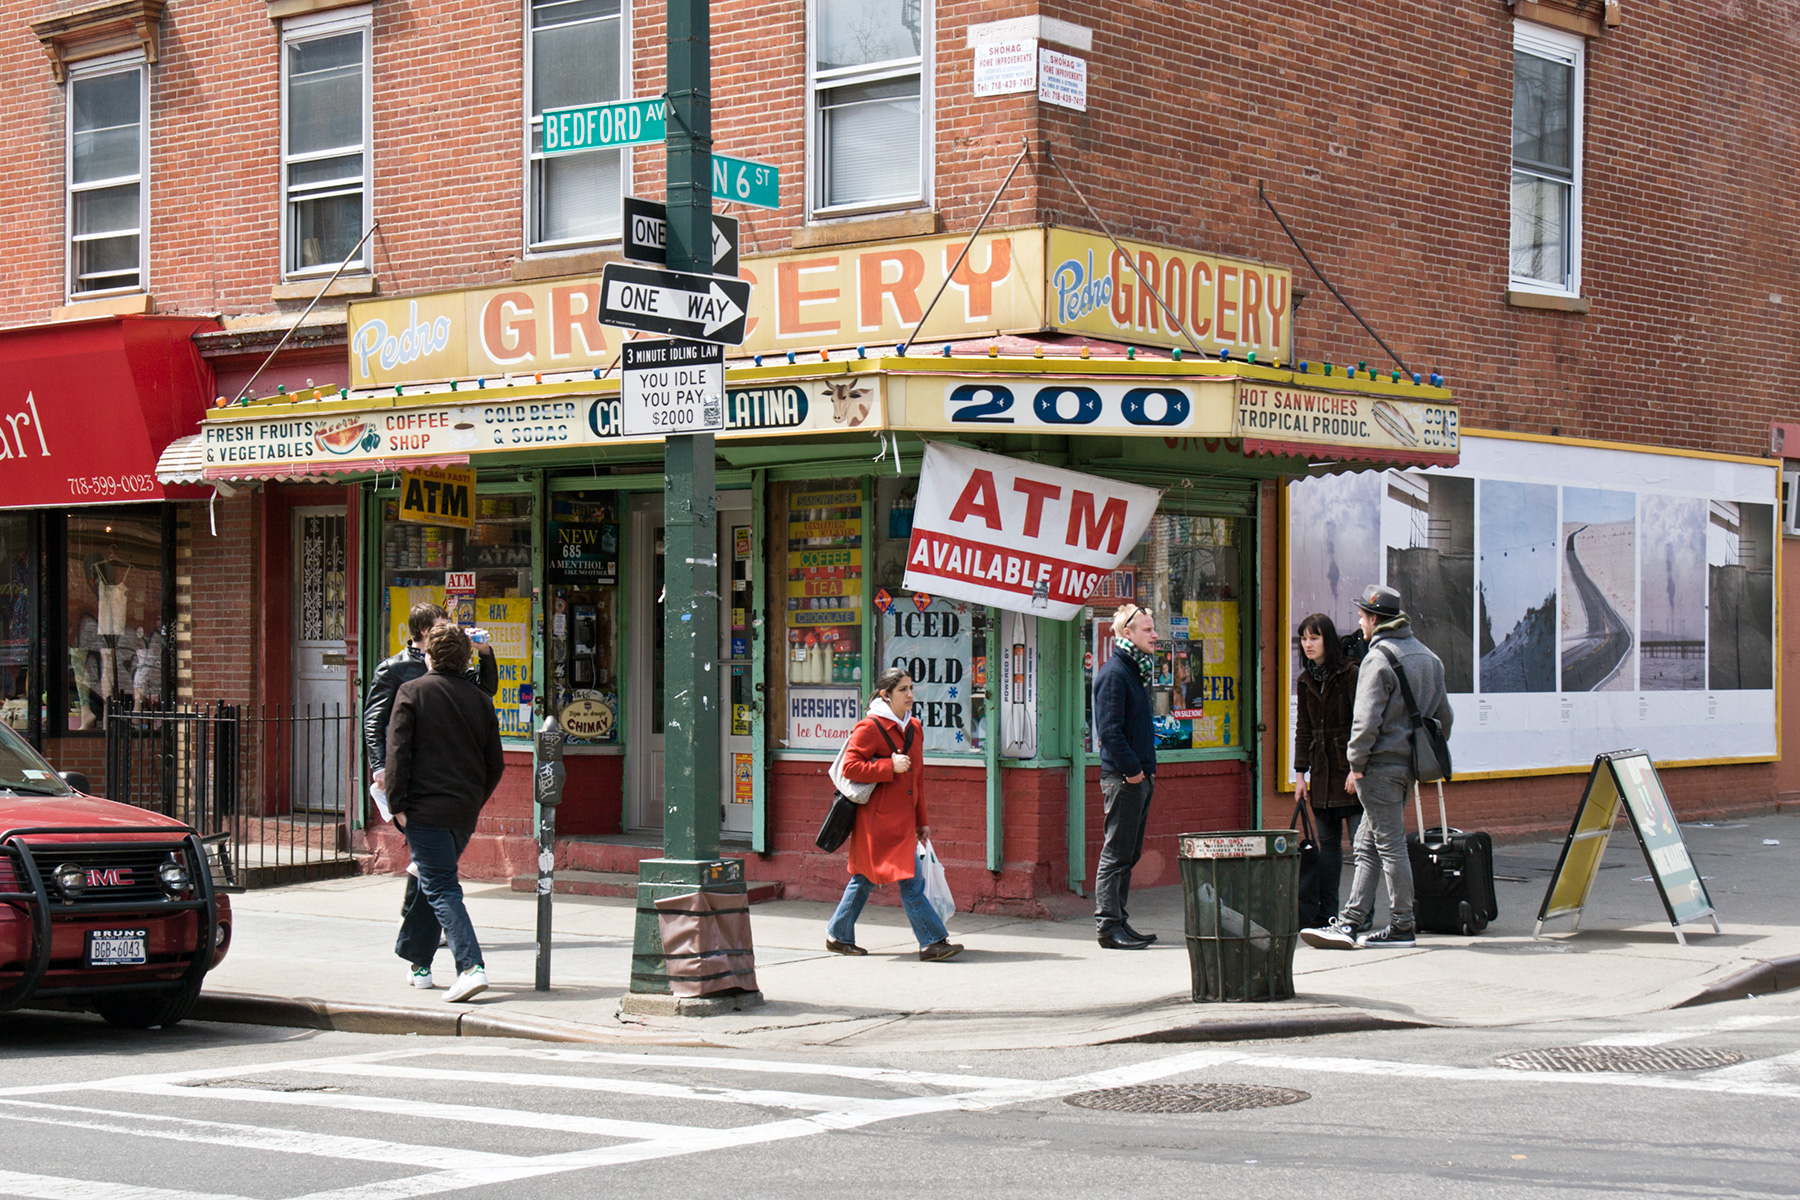 Stadterkundung New York City, Deli-Groceries